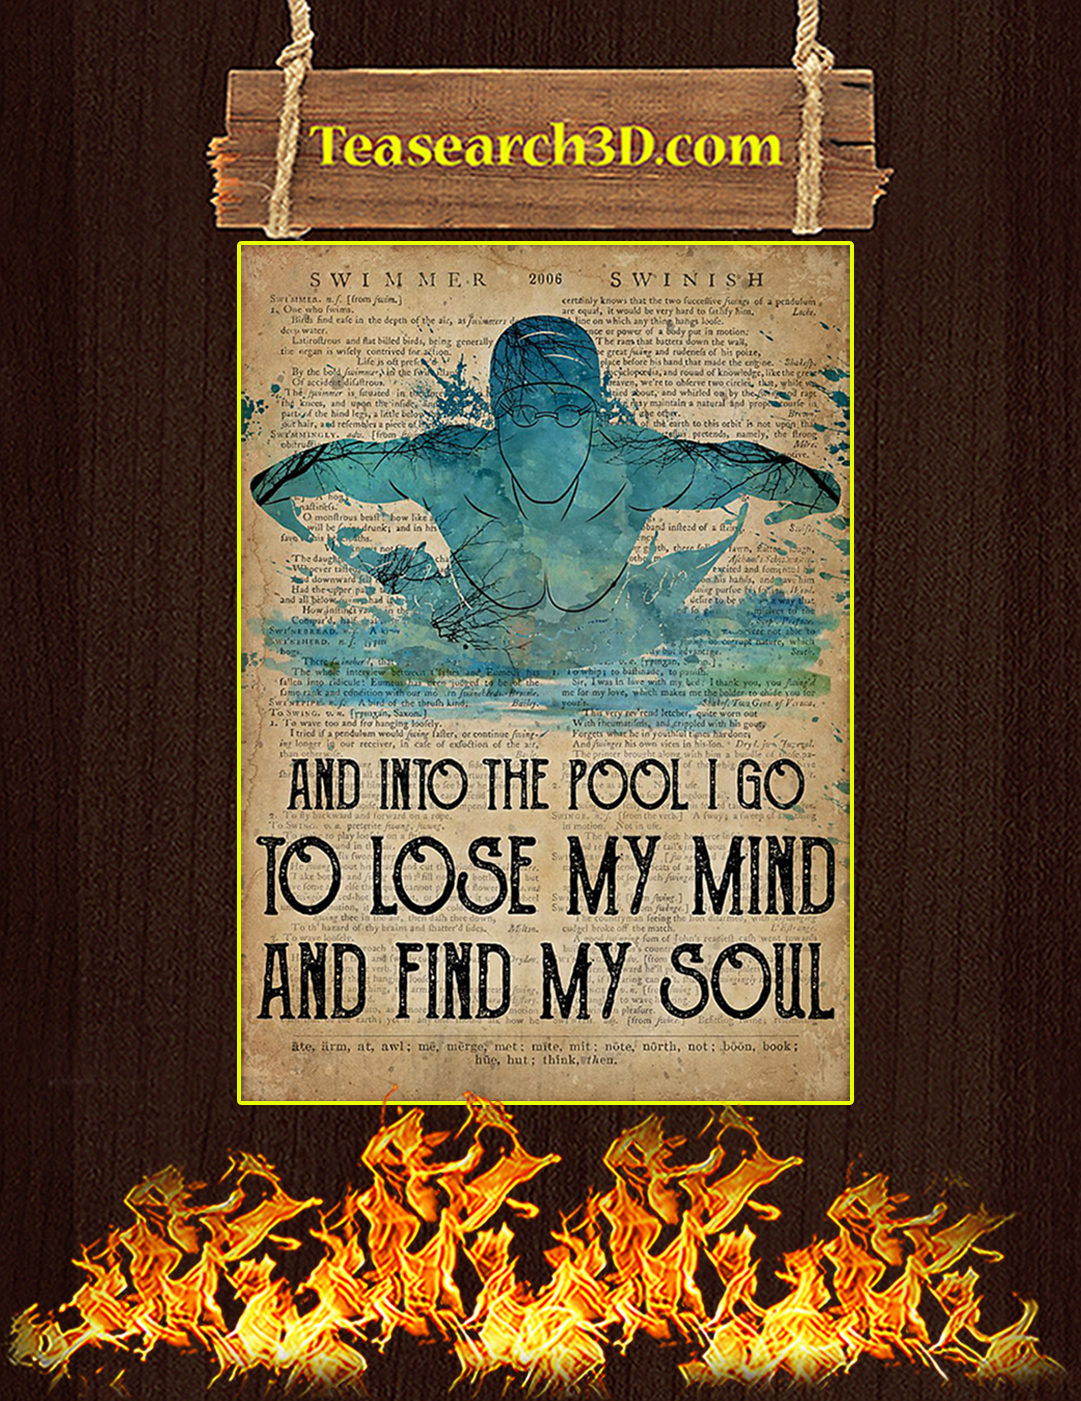 Swimming to loose my mind and find my soul poster A2